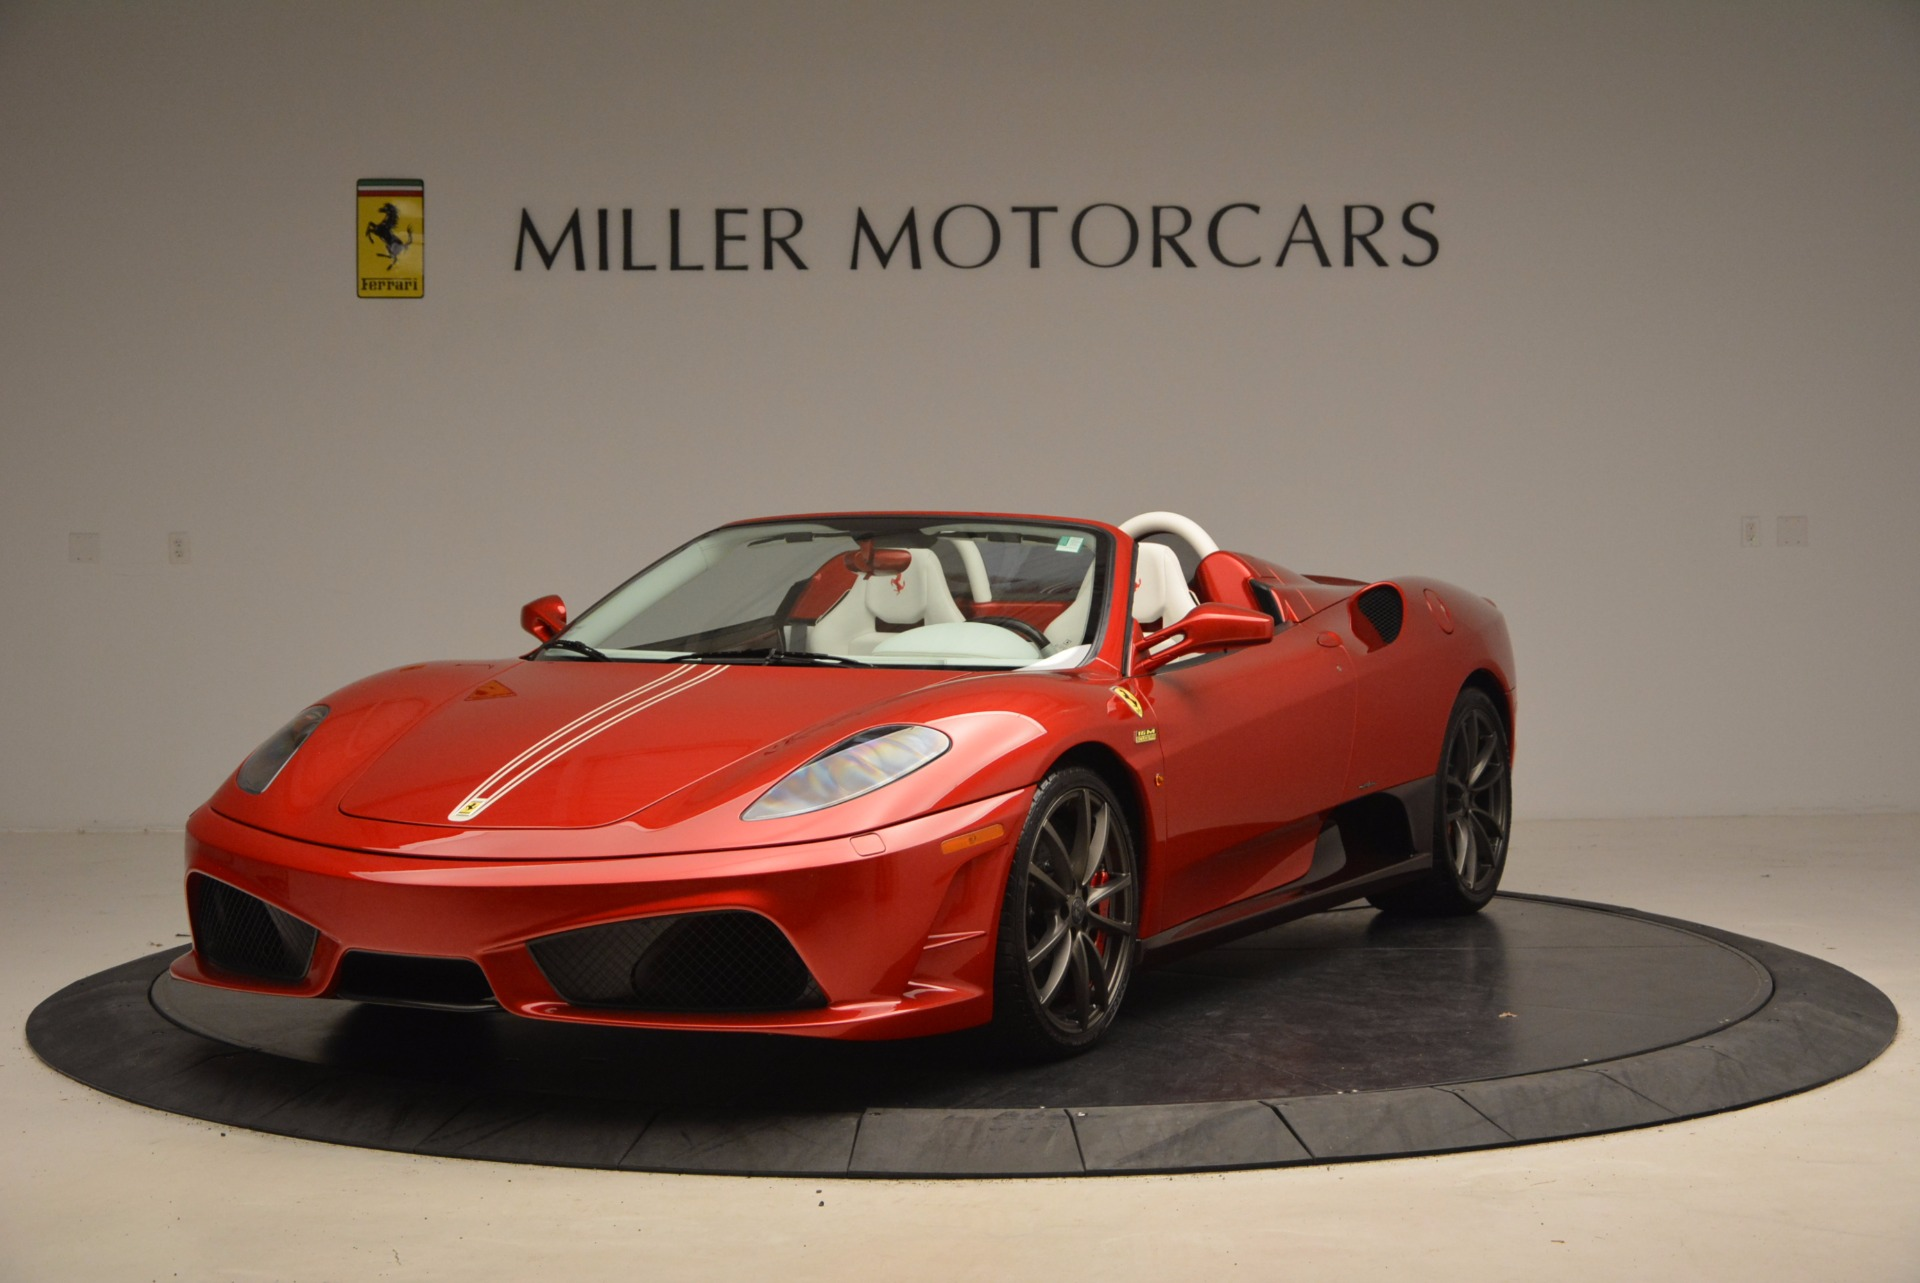 Used 2009 Ferrari F430 Scuderia 16M For Sale In Westport, CT